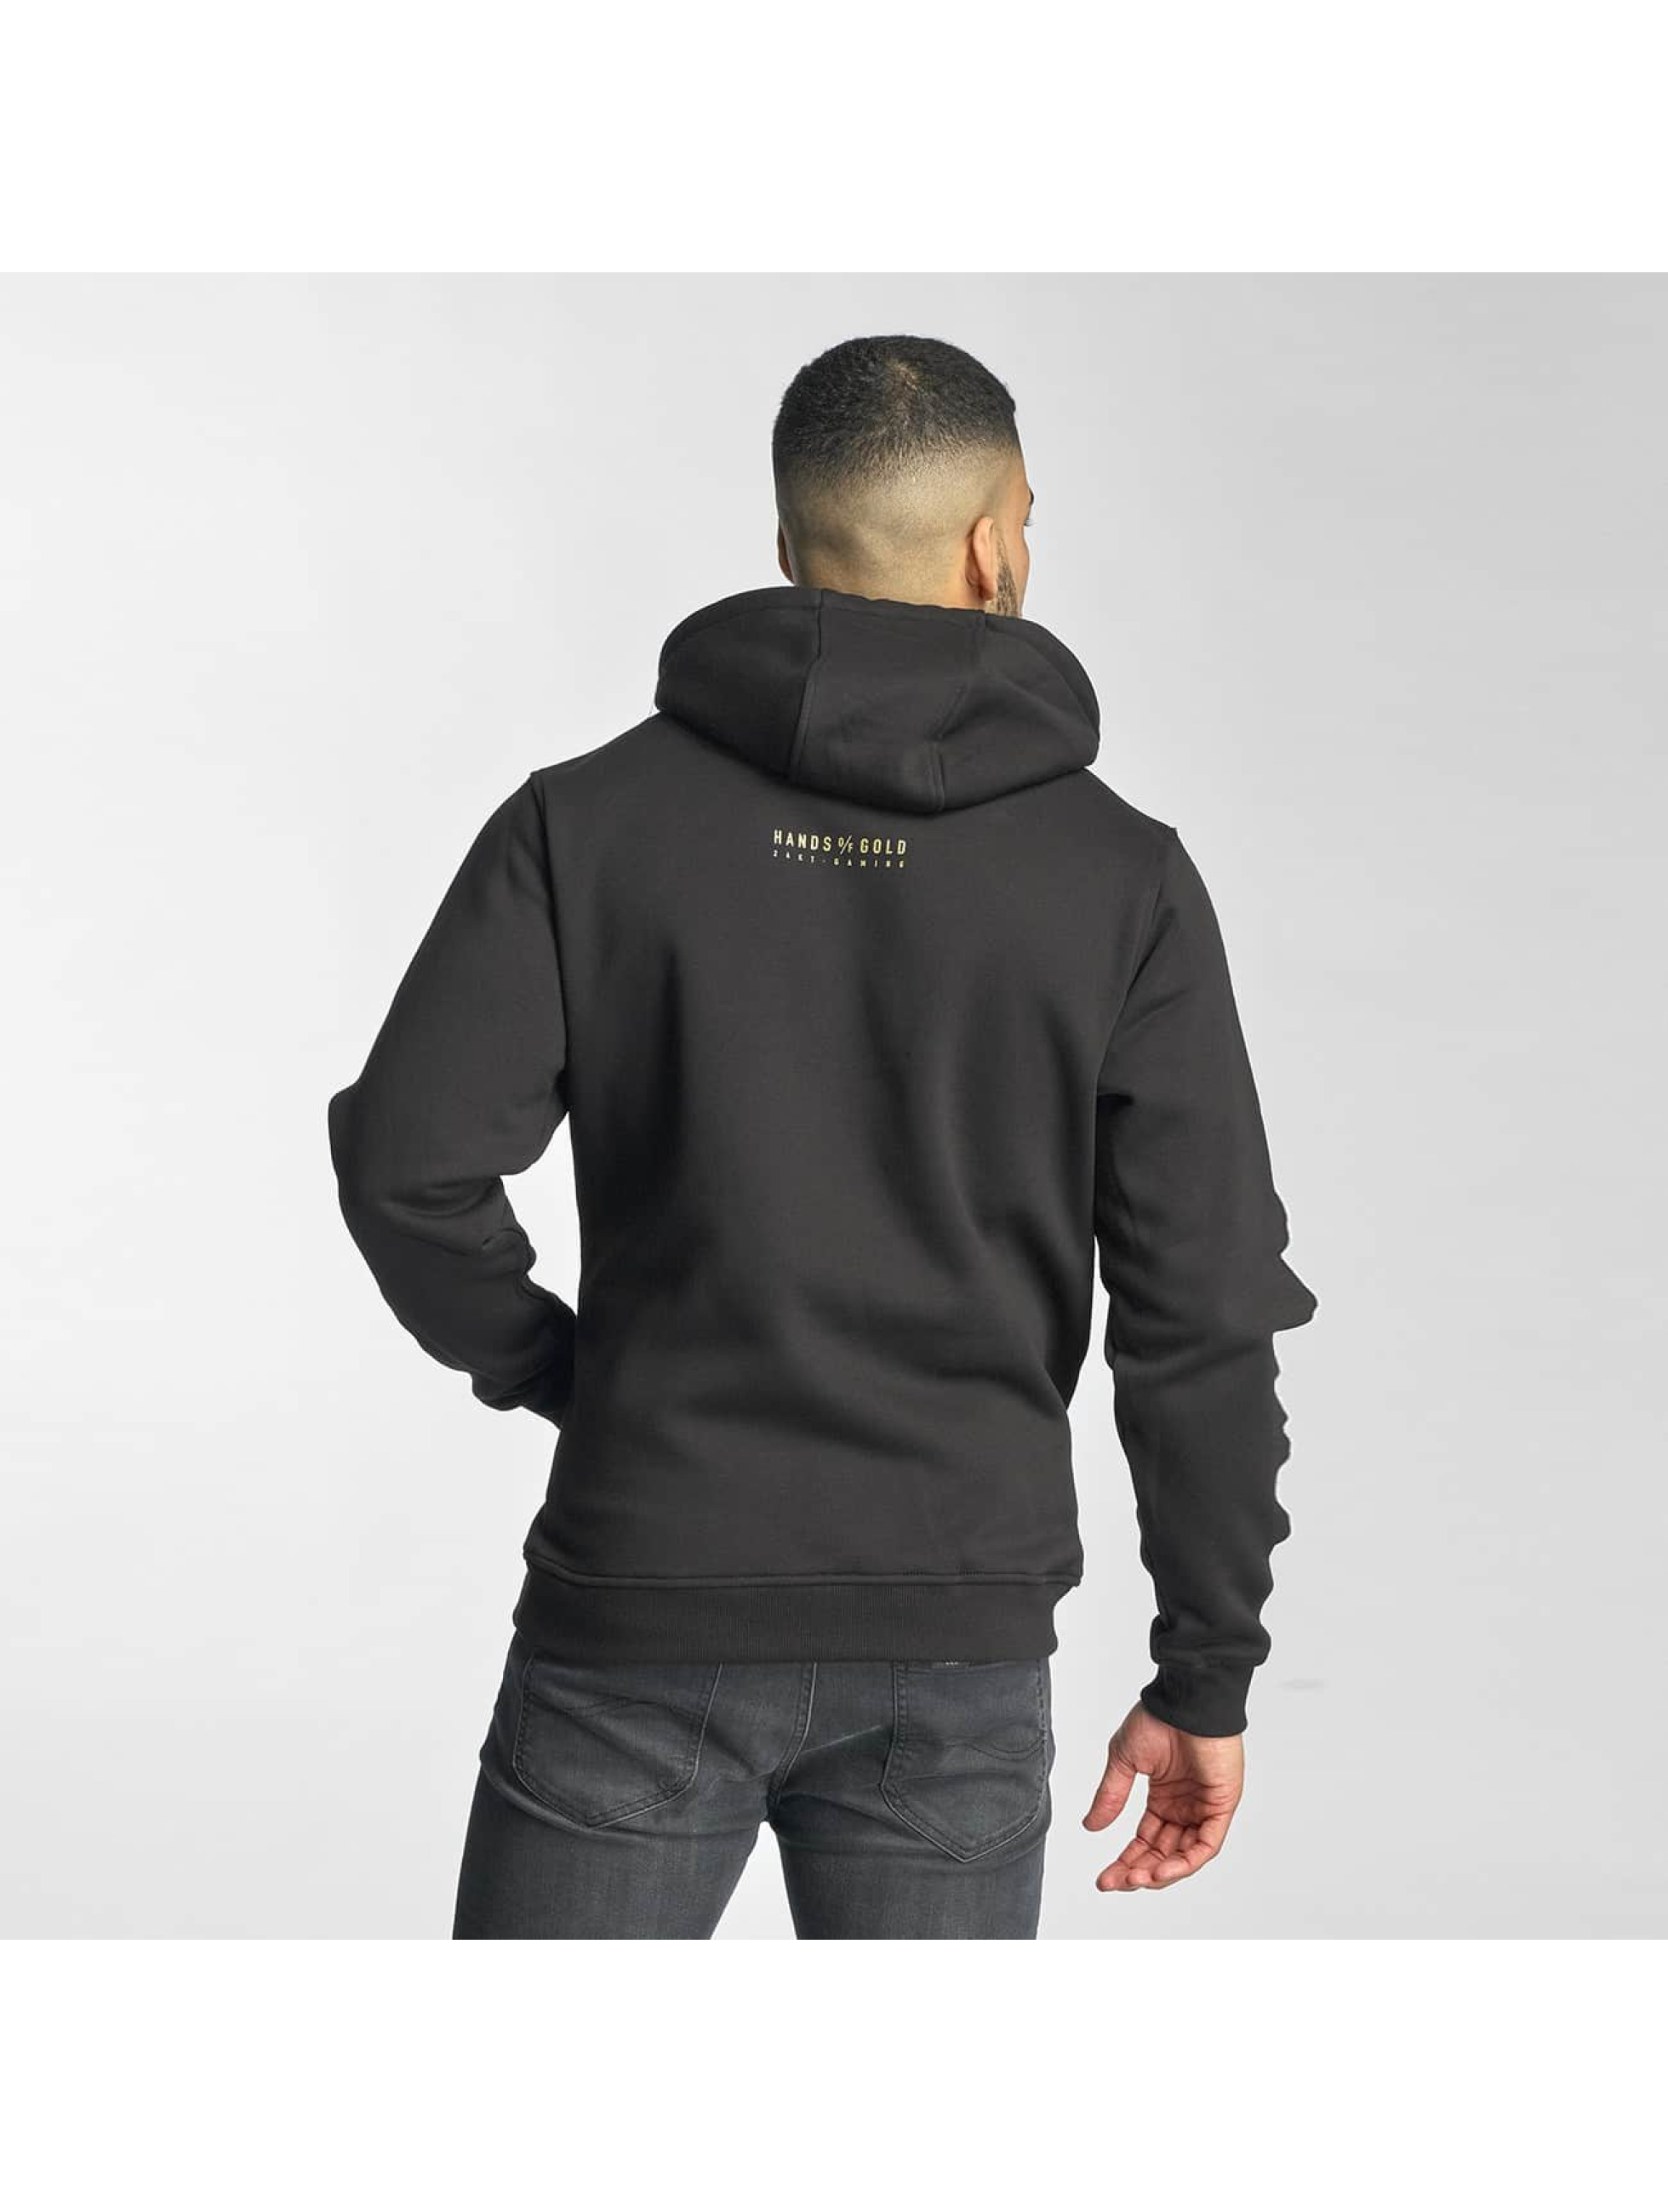 Hands of Gold Hoodie All Day black